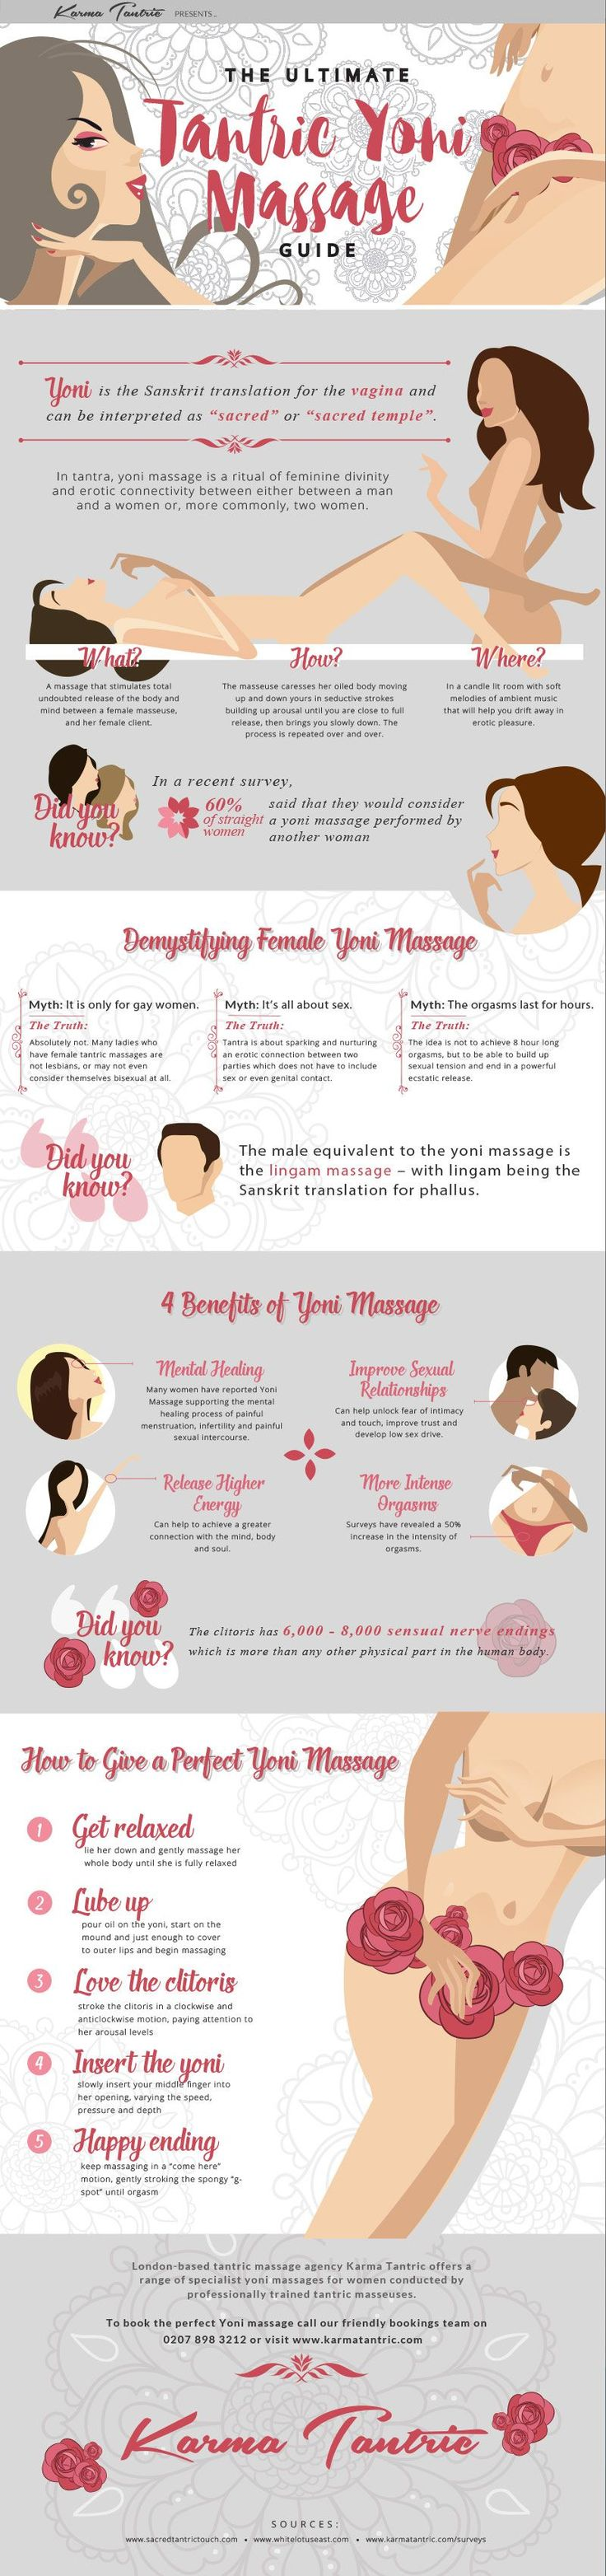 The Ultimate Tantric Yoni Massage Guide #tantra #yoni #tantra #yonimassage #vagina #women